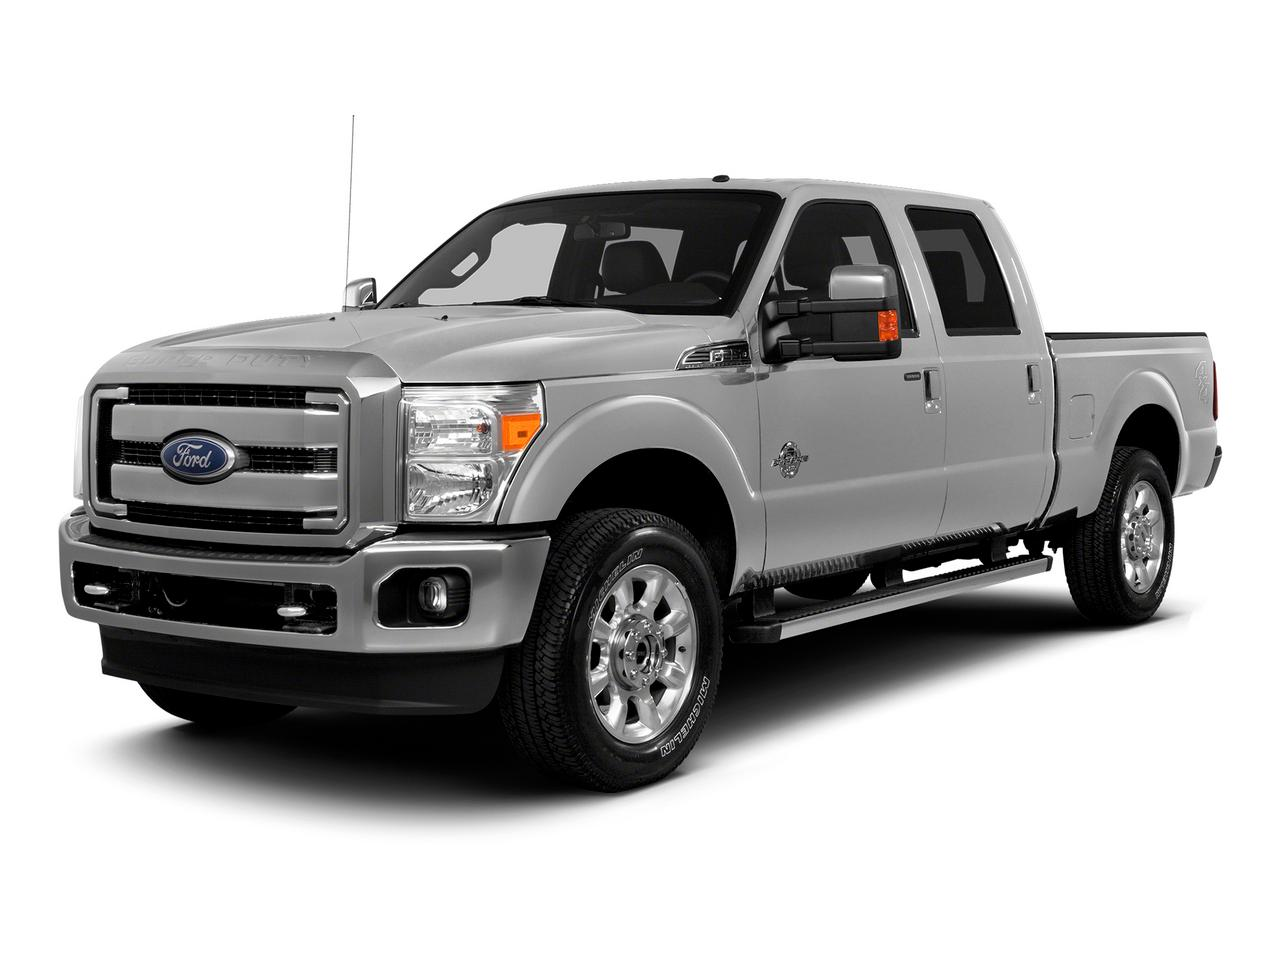 2015 Ford Super Duty F-250 SRW Vehicle Photo in Colorado Springs, CO 80920